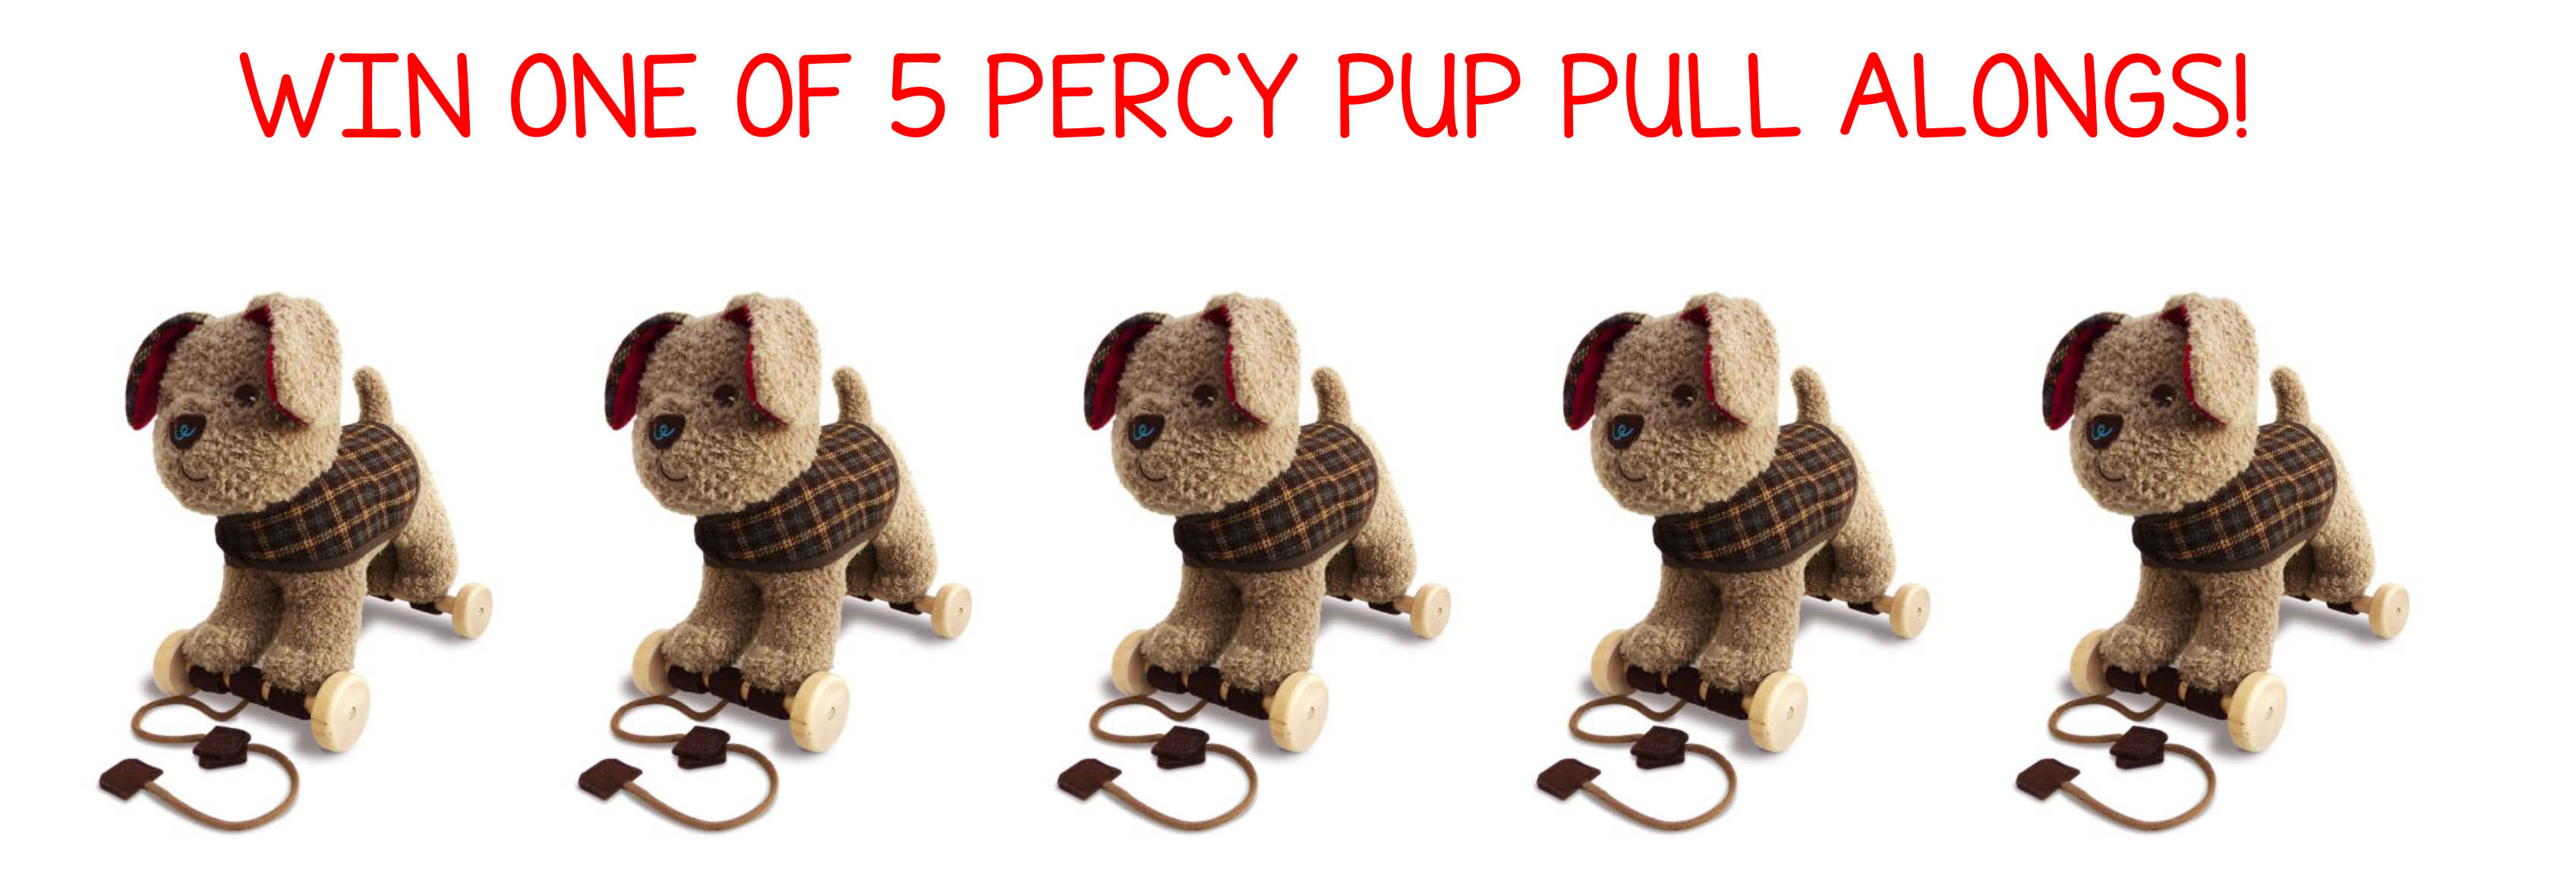 Spring is HERE! Win 1 of 5 Percy Pup Pull Alongs!